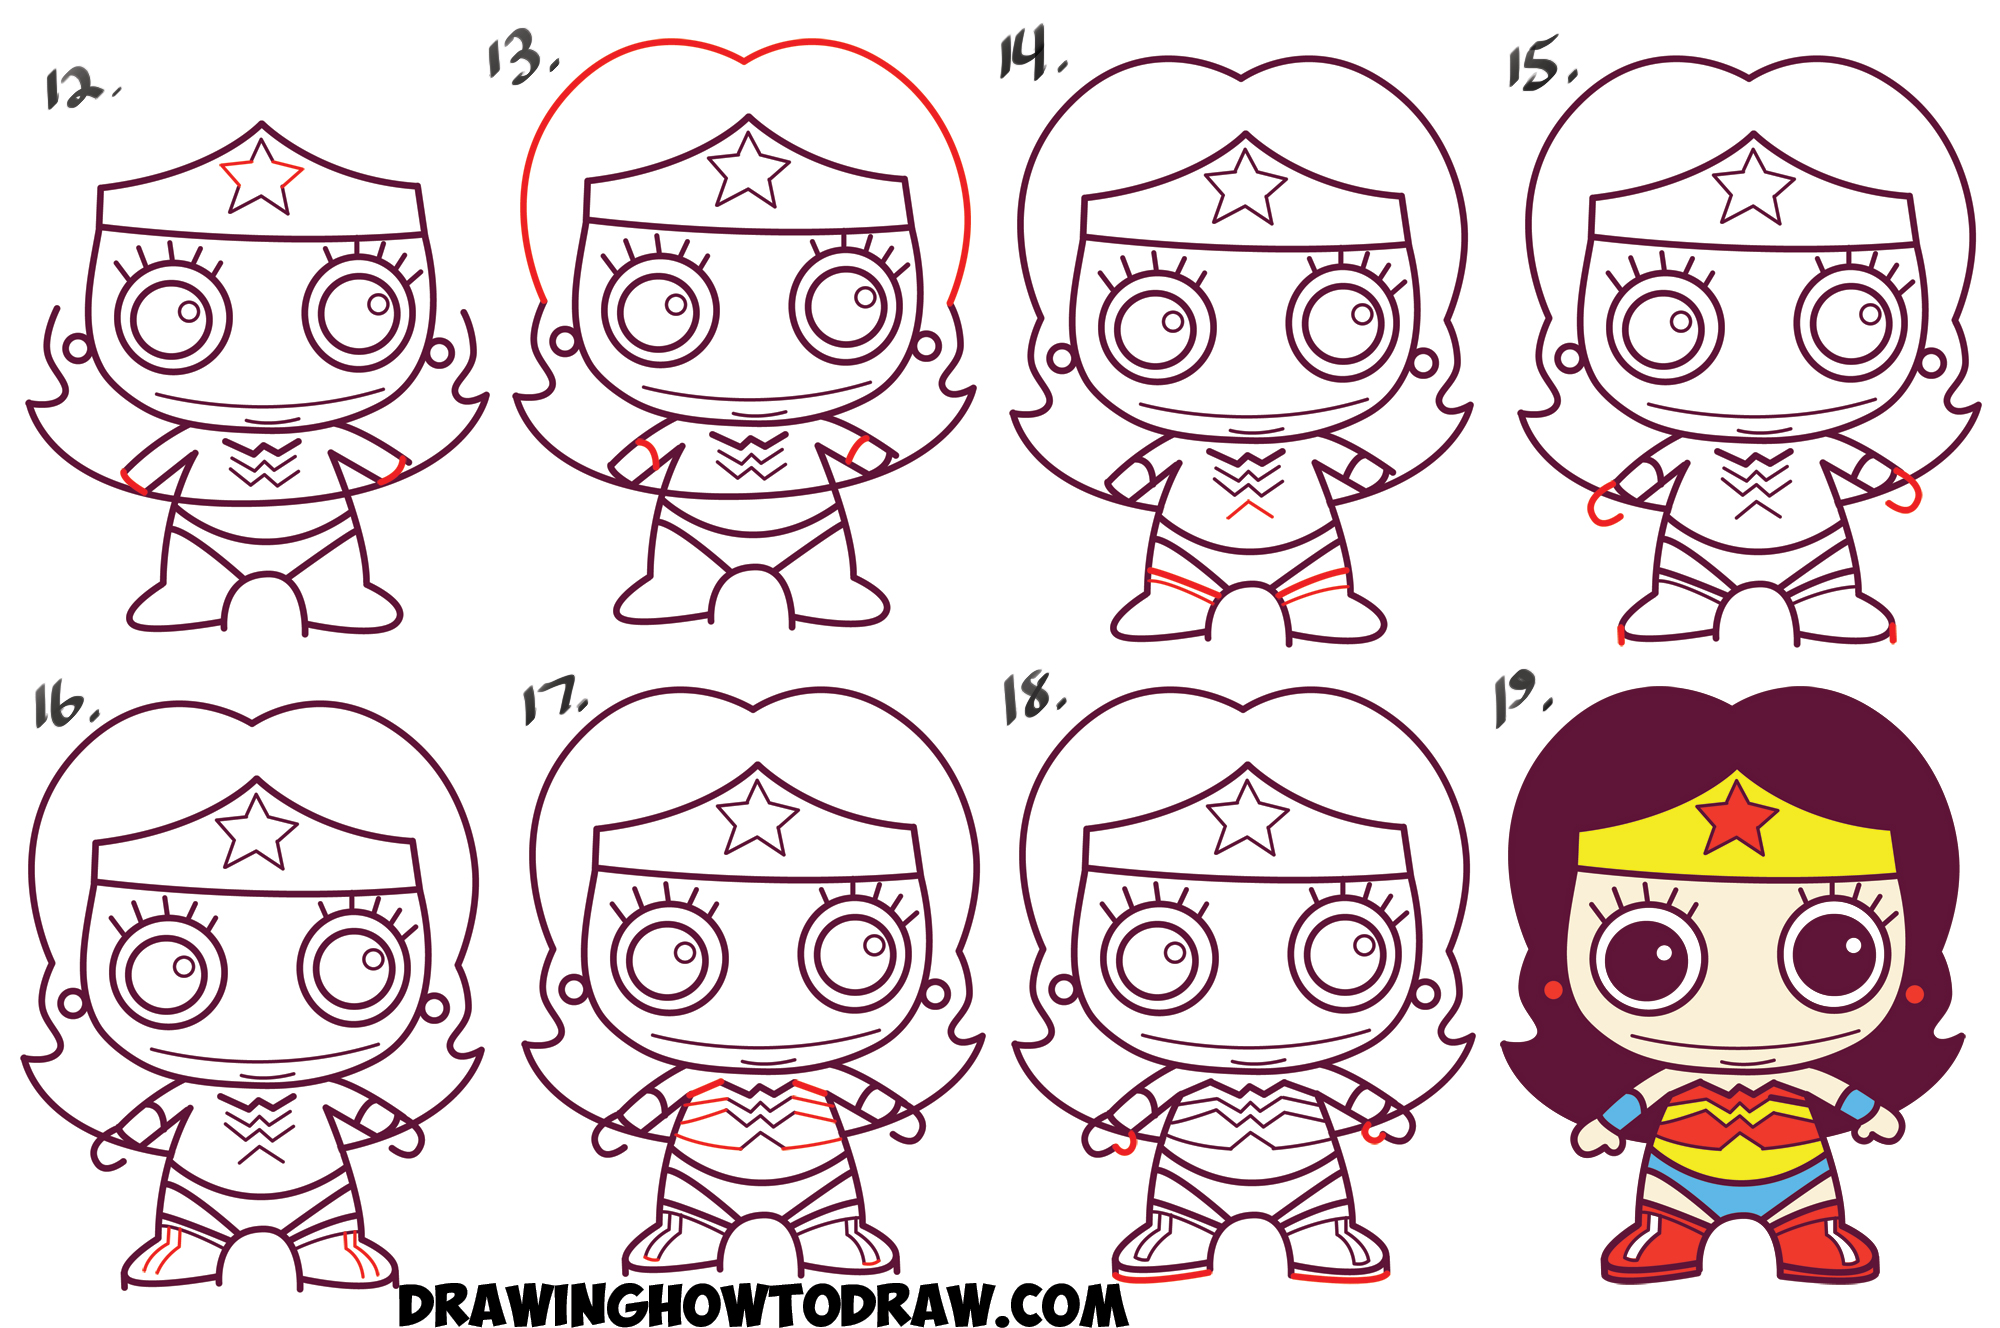 How To Draw Cute Chibi Wonder Woman From Dc Comics In Easy